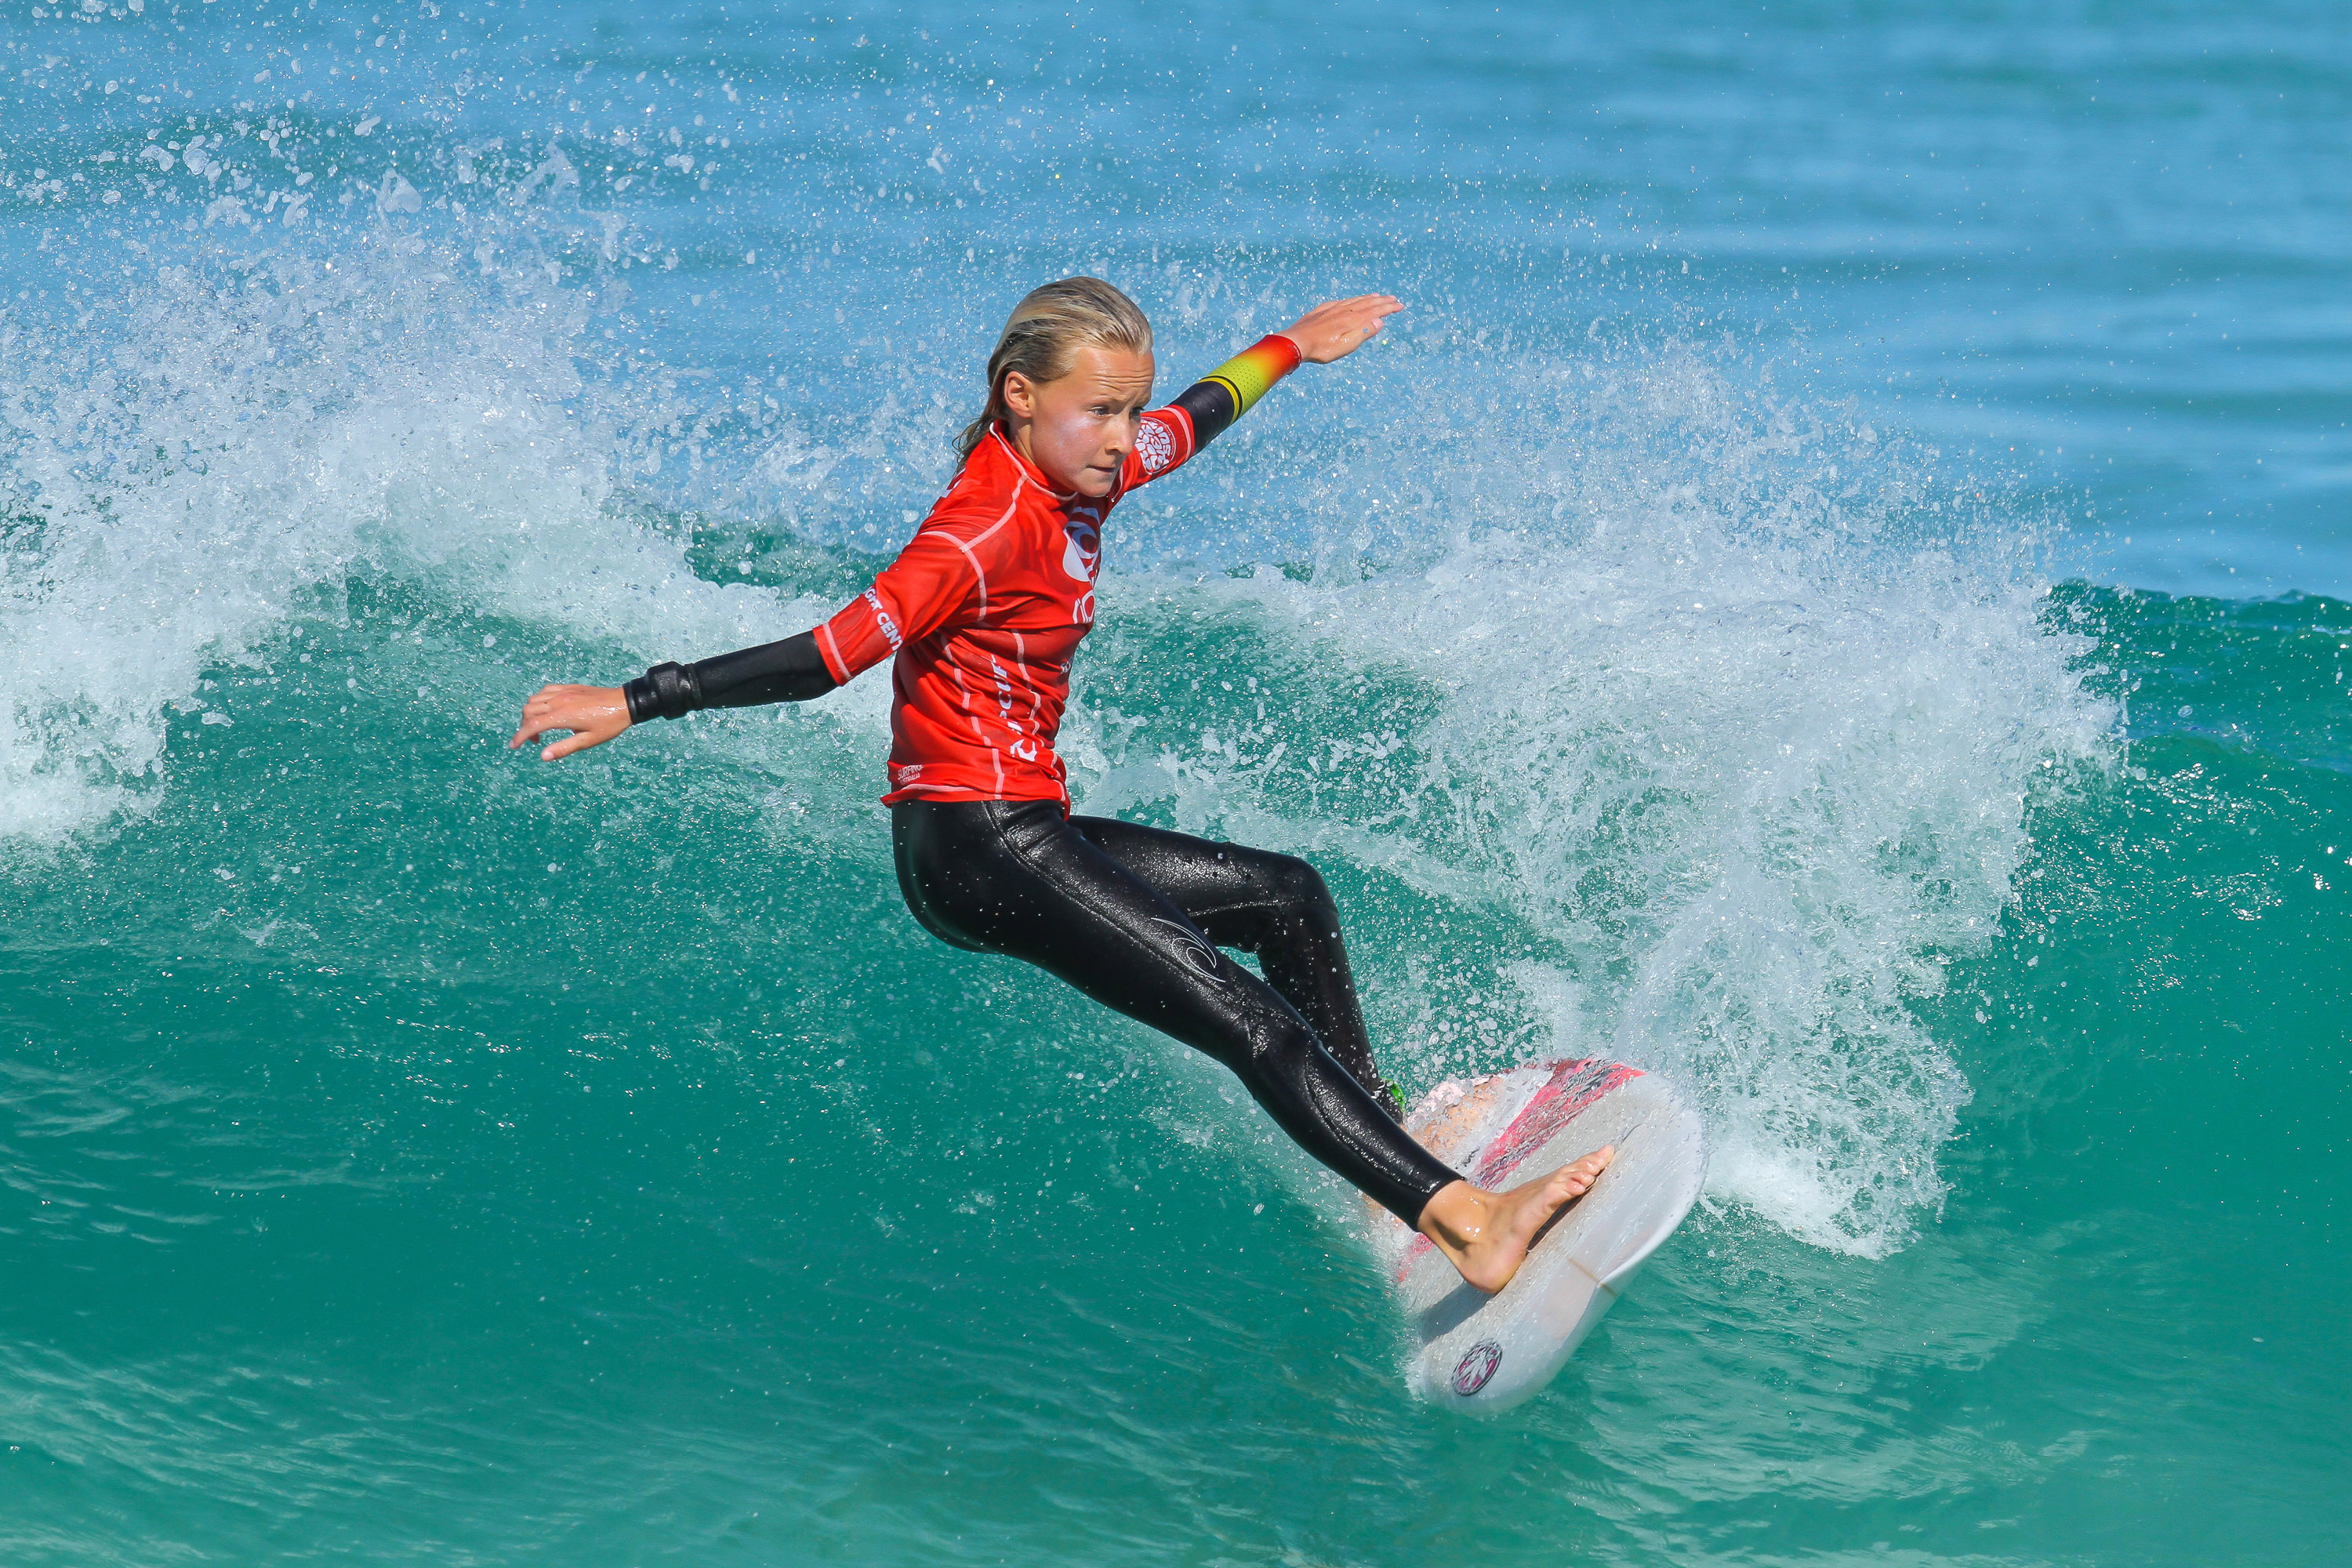 2017 Wa Junior Surfing Team Zali Hewson Margaret River Woolacott